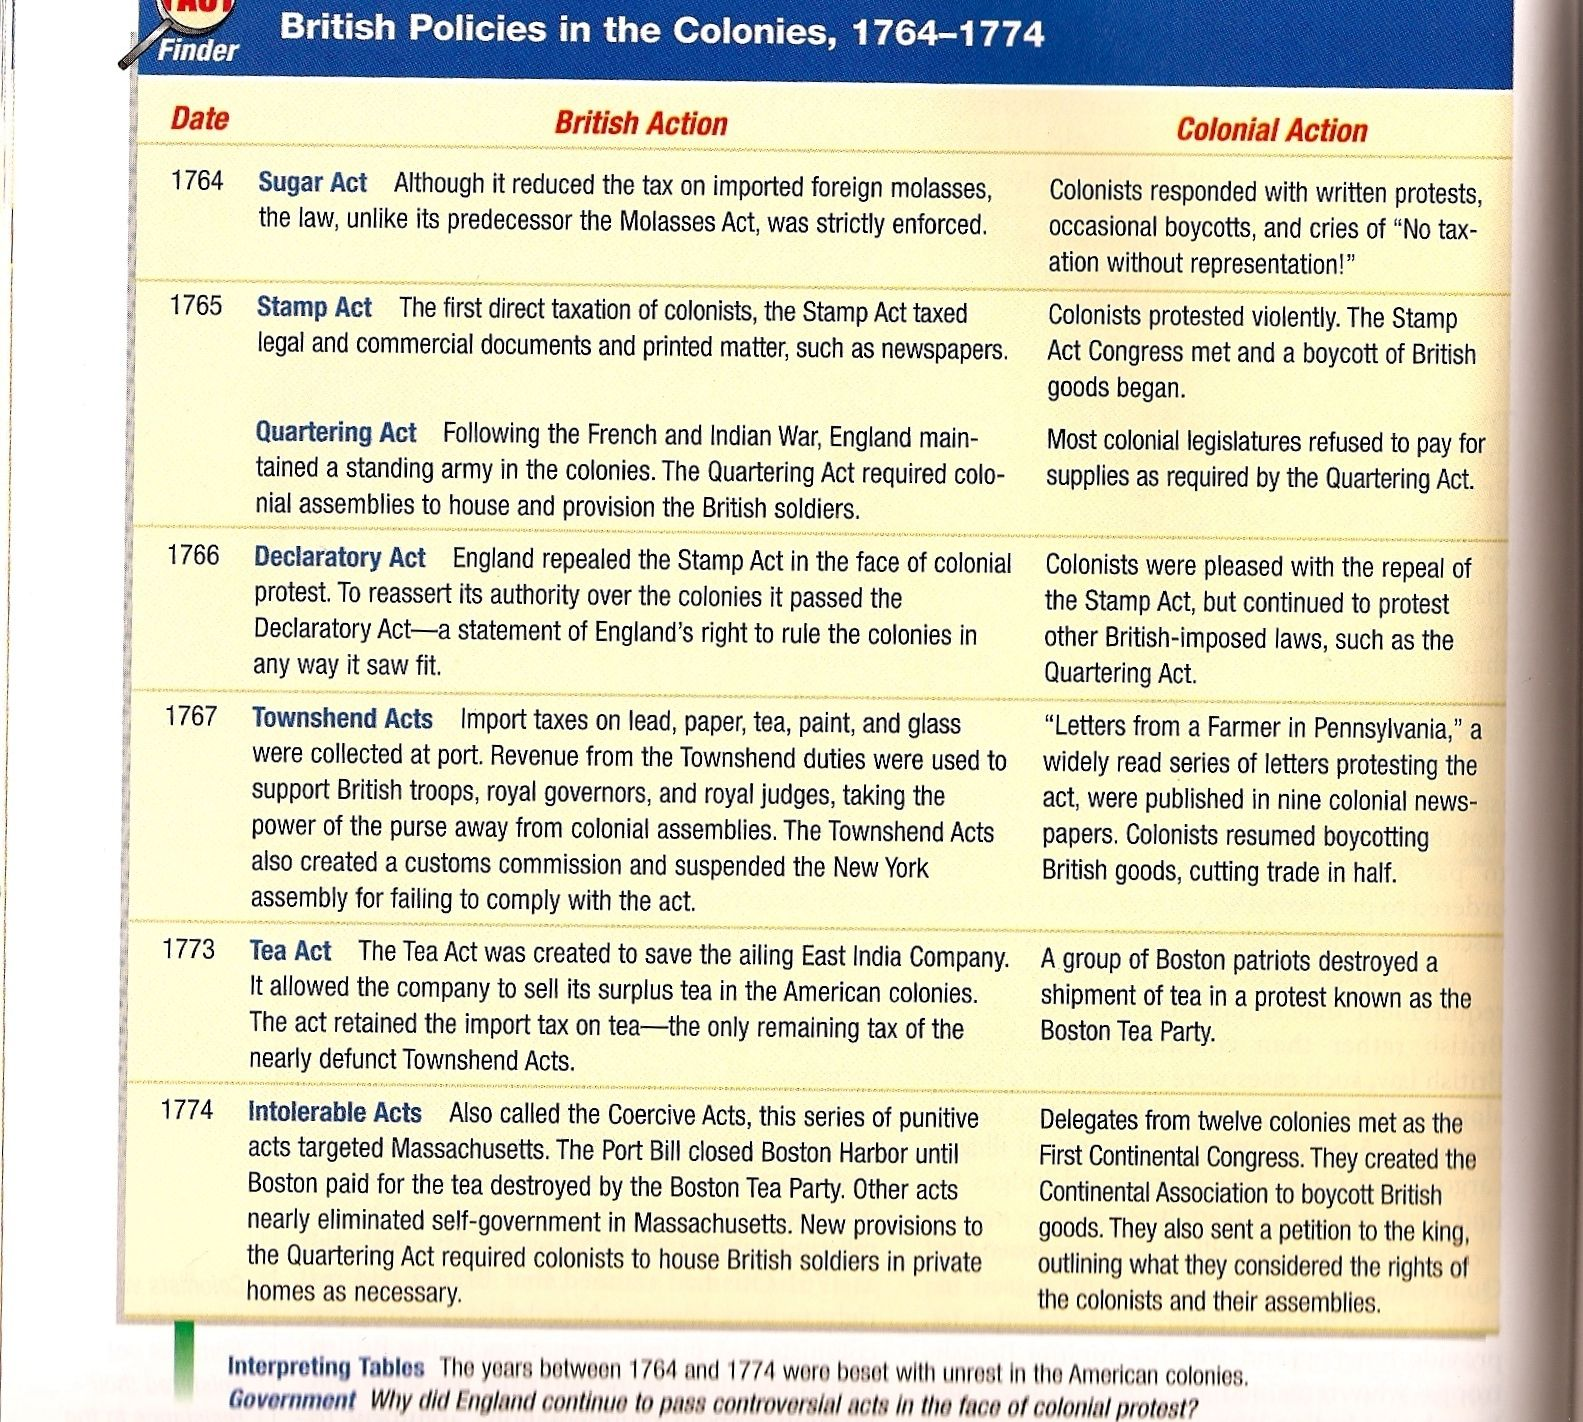 1760s Timeline Emphasizing British Acts And Colonial Responses